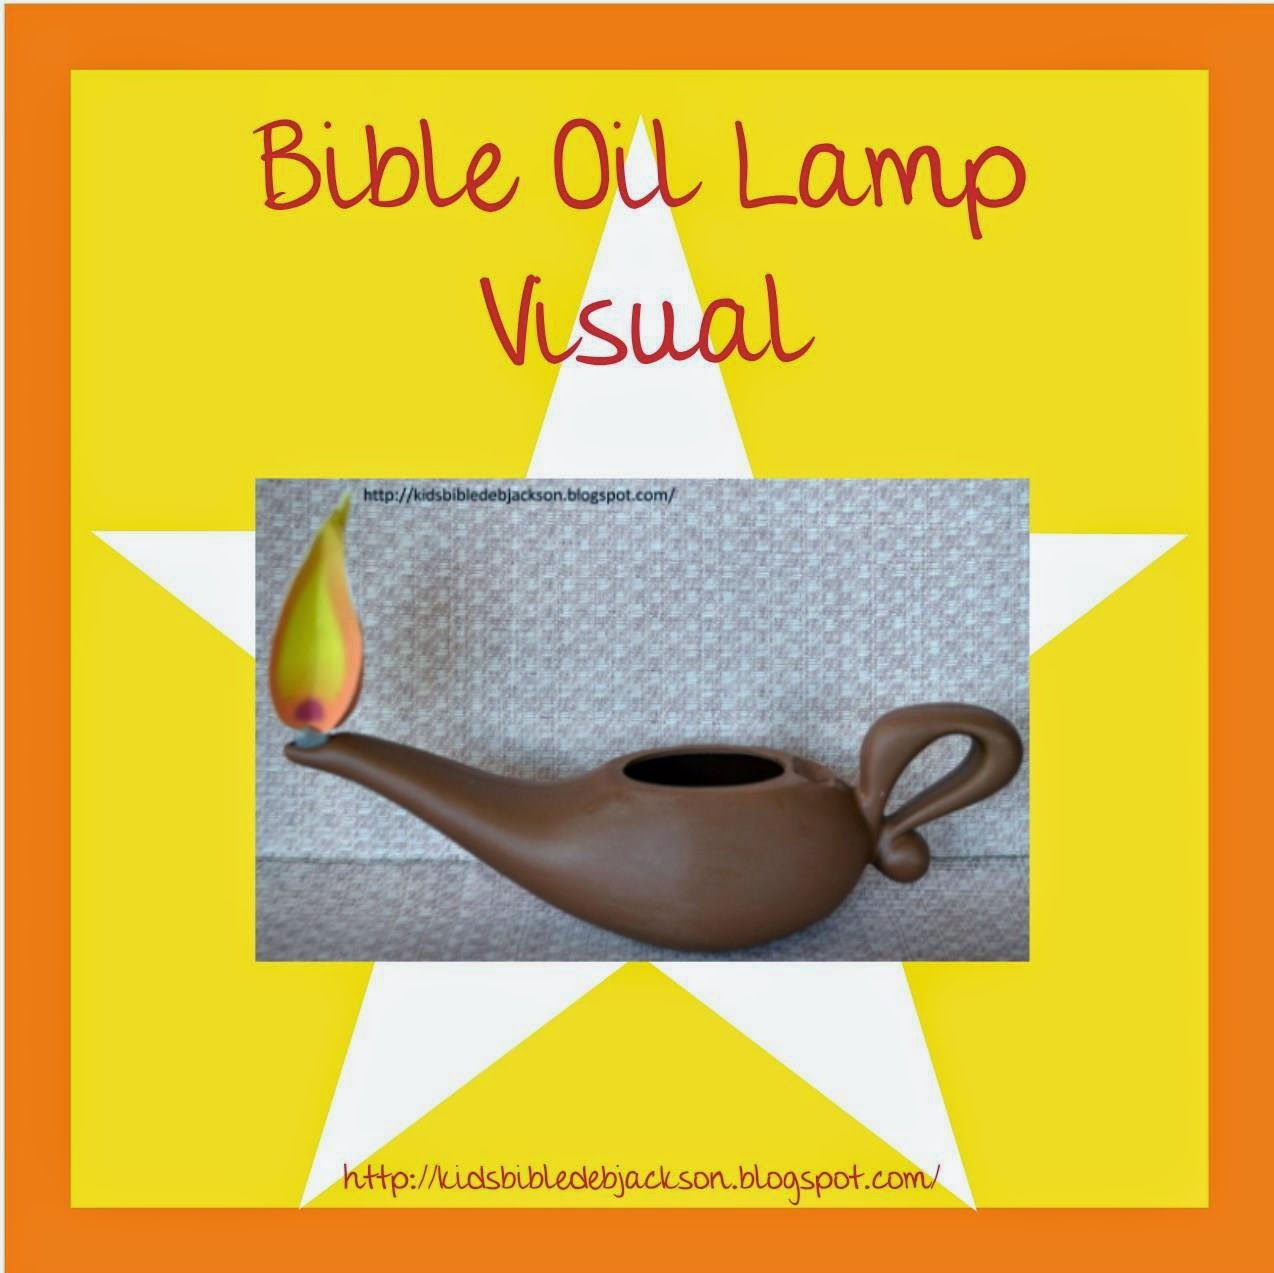 http://kidsbibledebjackson.blogspot.com/2014/05/bible-oil-lamp-visual.html